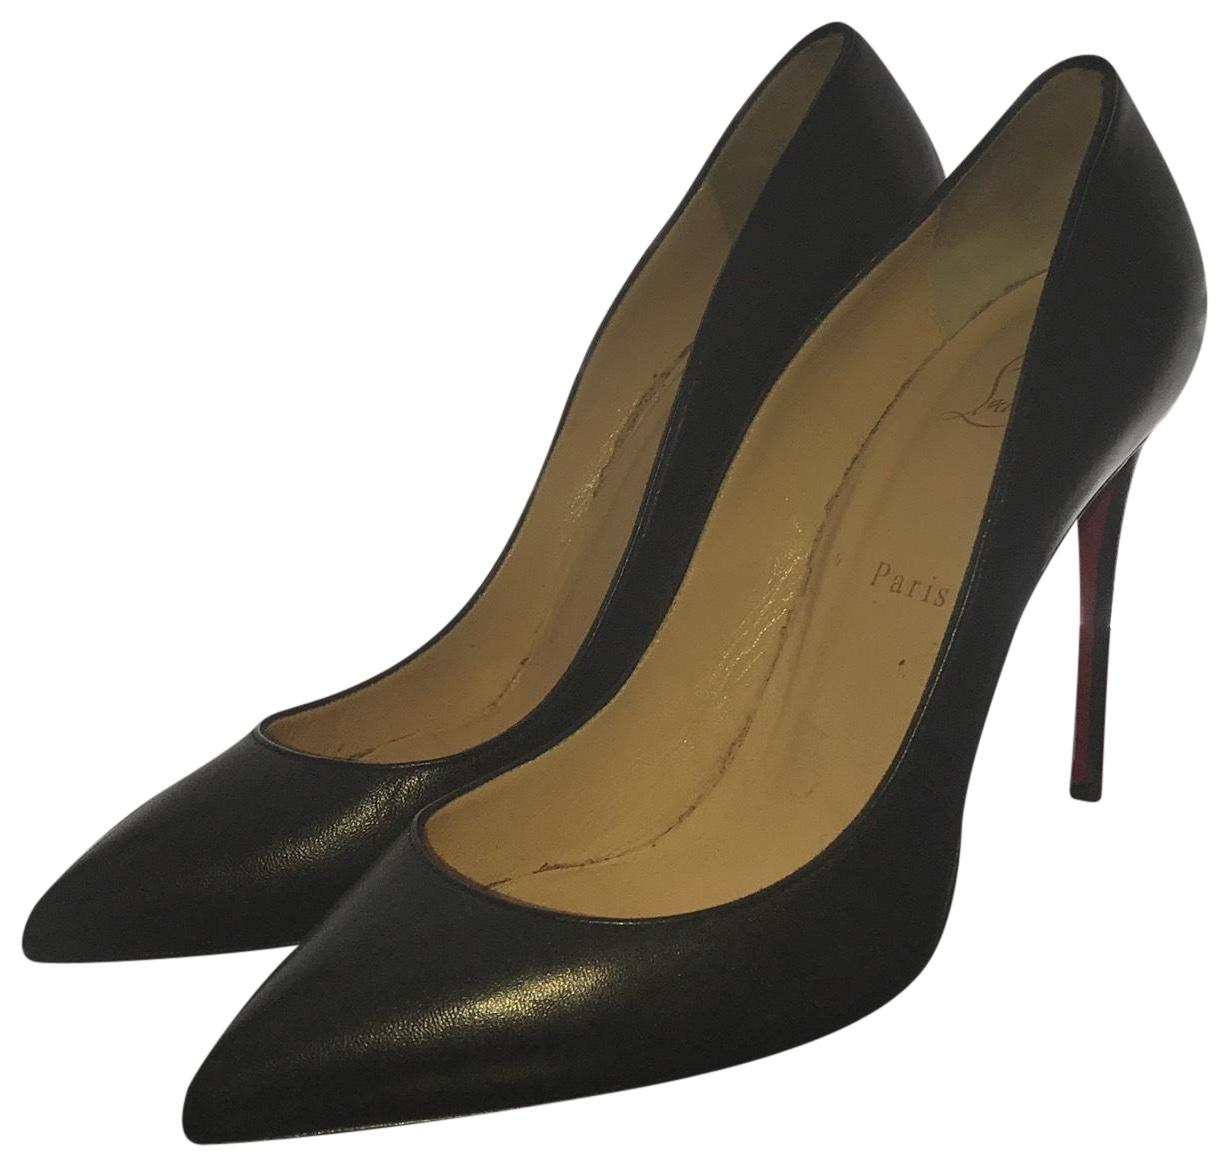 Christian Louboutin Black Pigalle Pumps Size EU 39.5 (Approx. US 9.5) Regular (M, B)